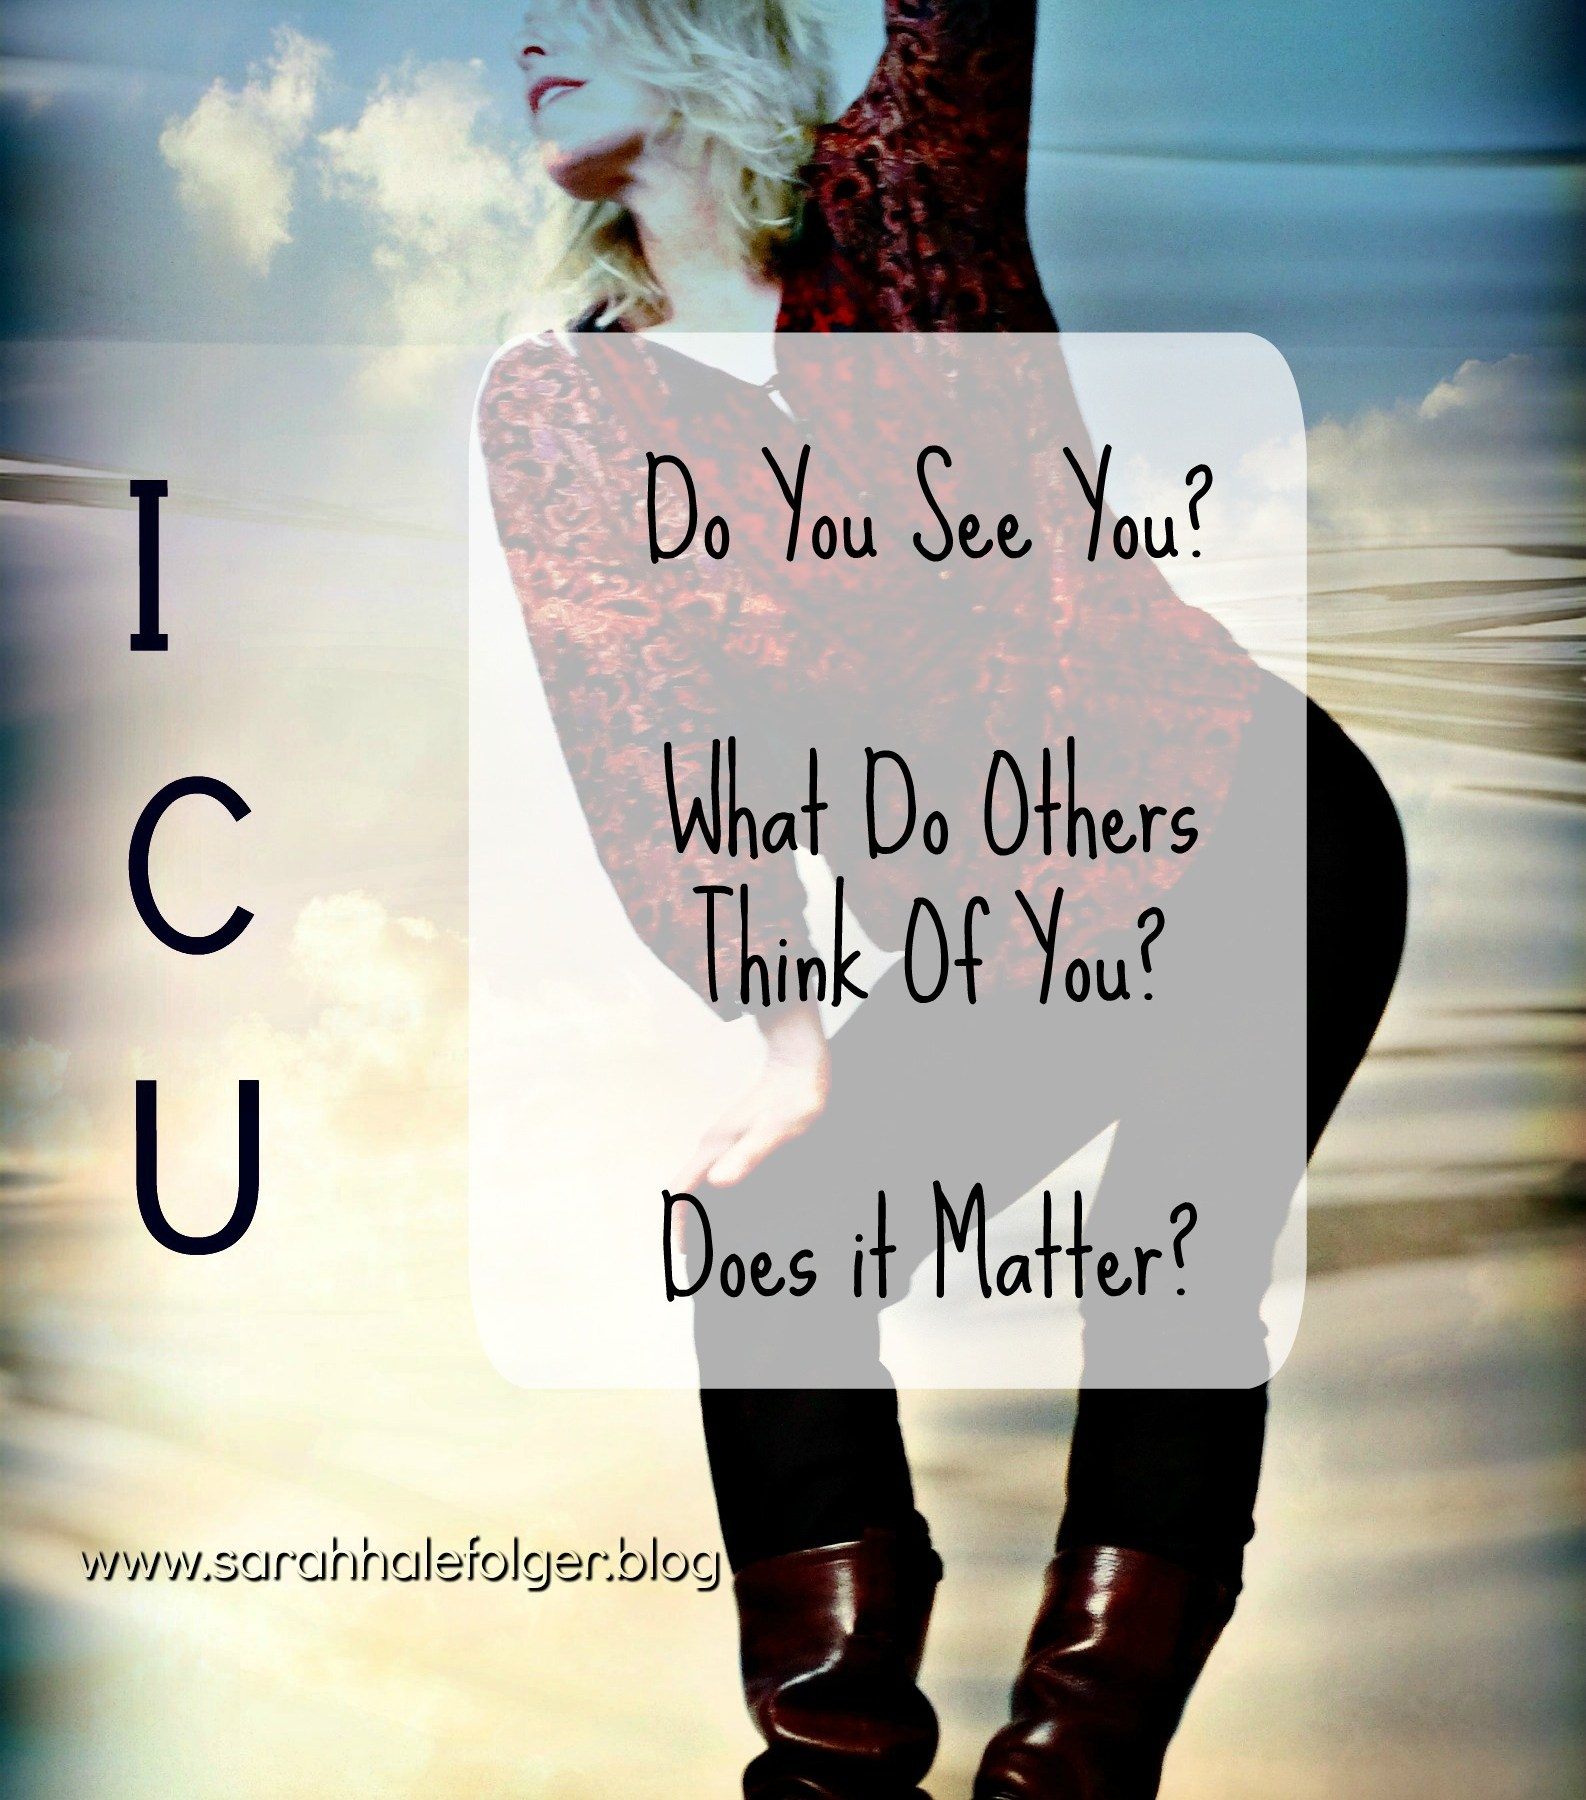 sarah hale folger icu 1 - Does it matter what others think of you?